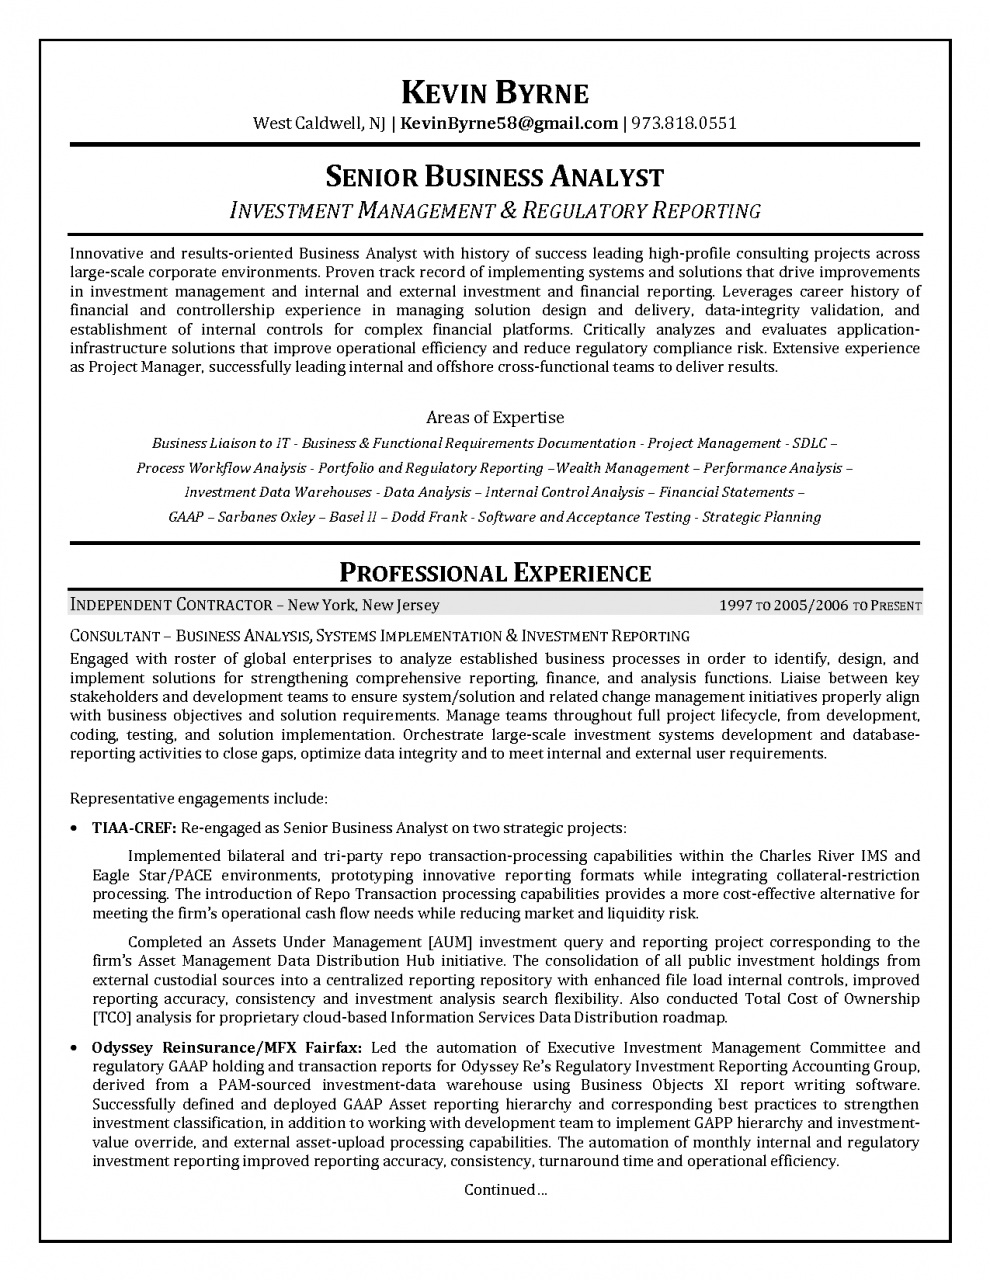 Senior Business Analyst Resume Resumesenior Business Analyst Resume Format Business Analyst